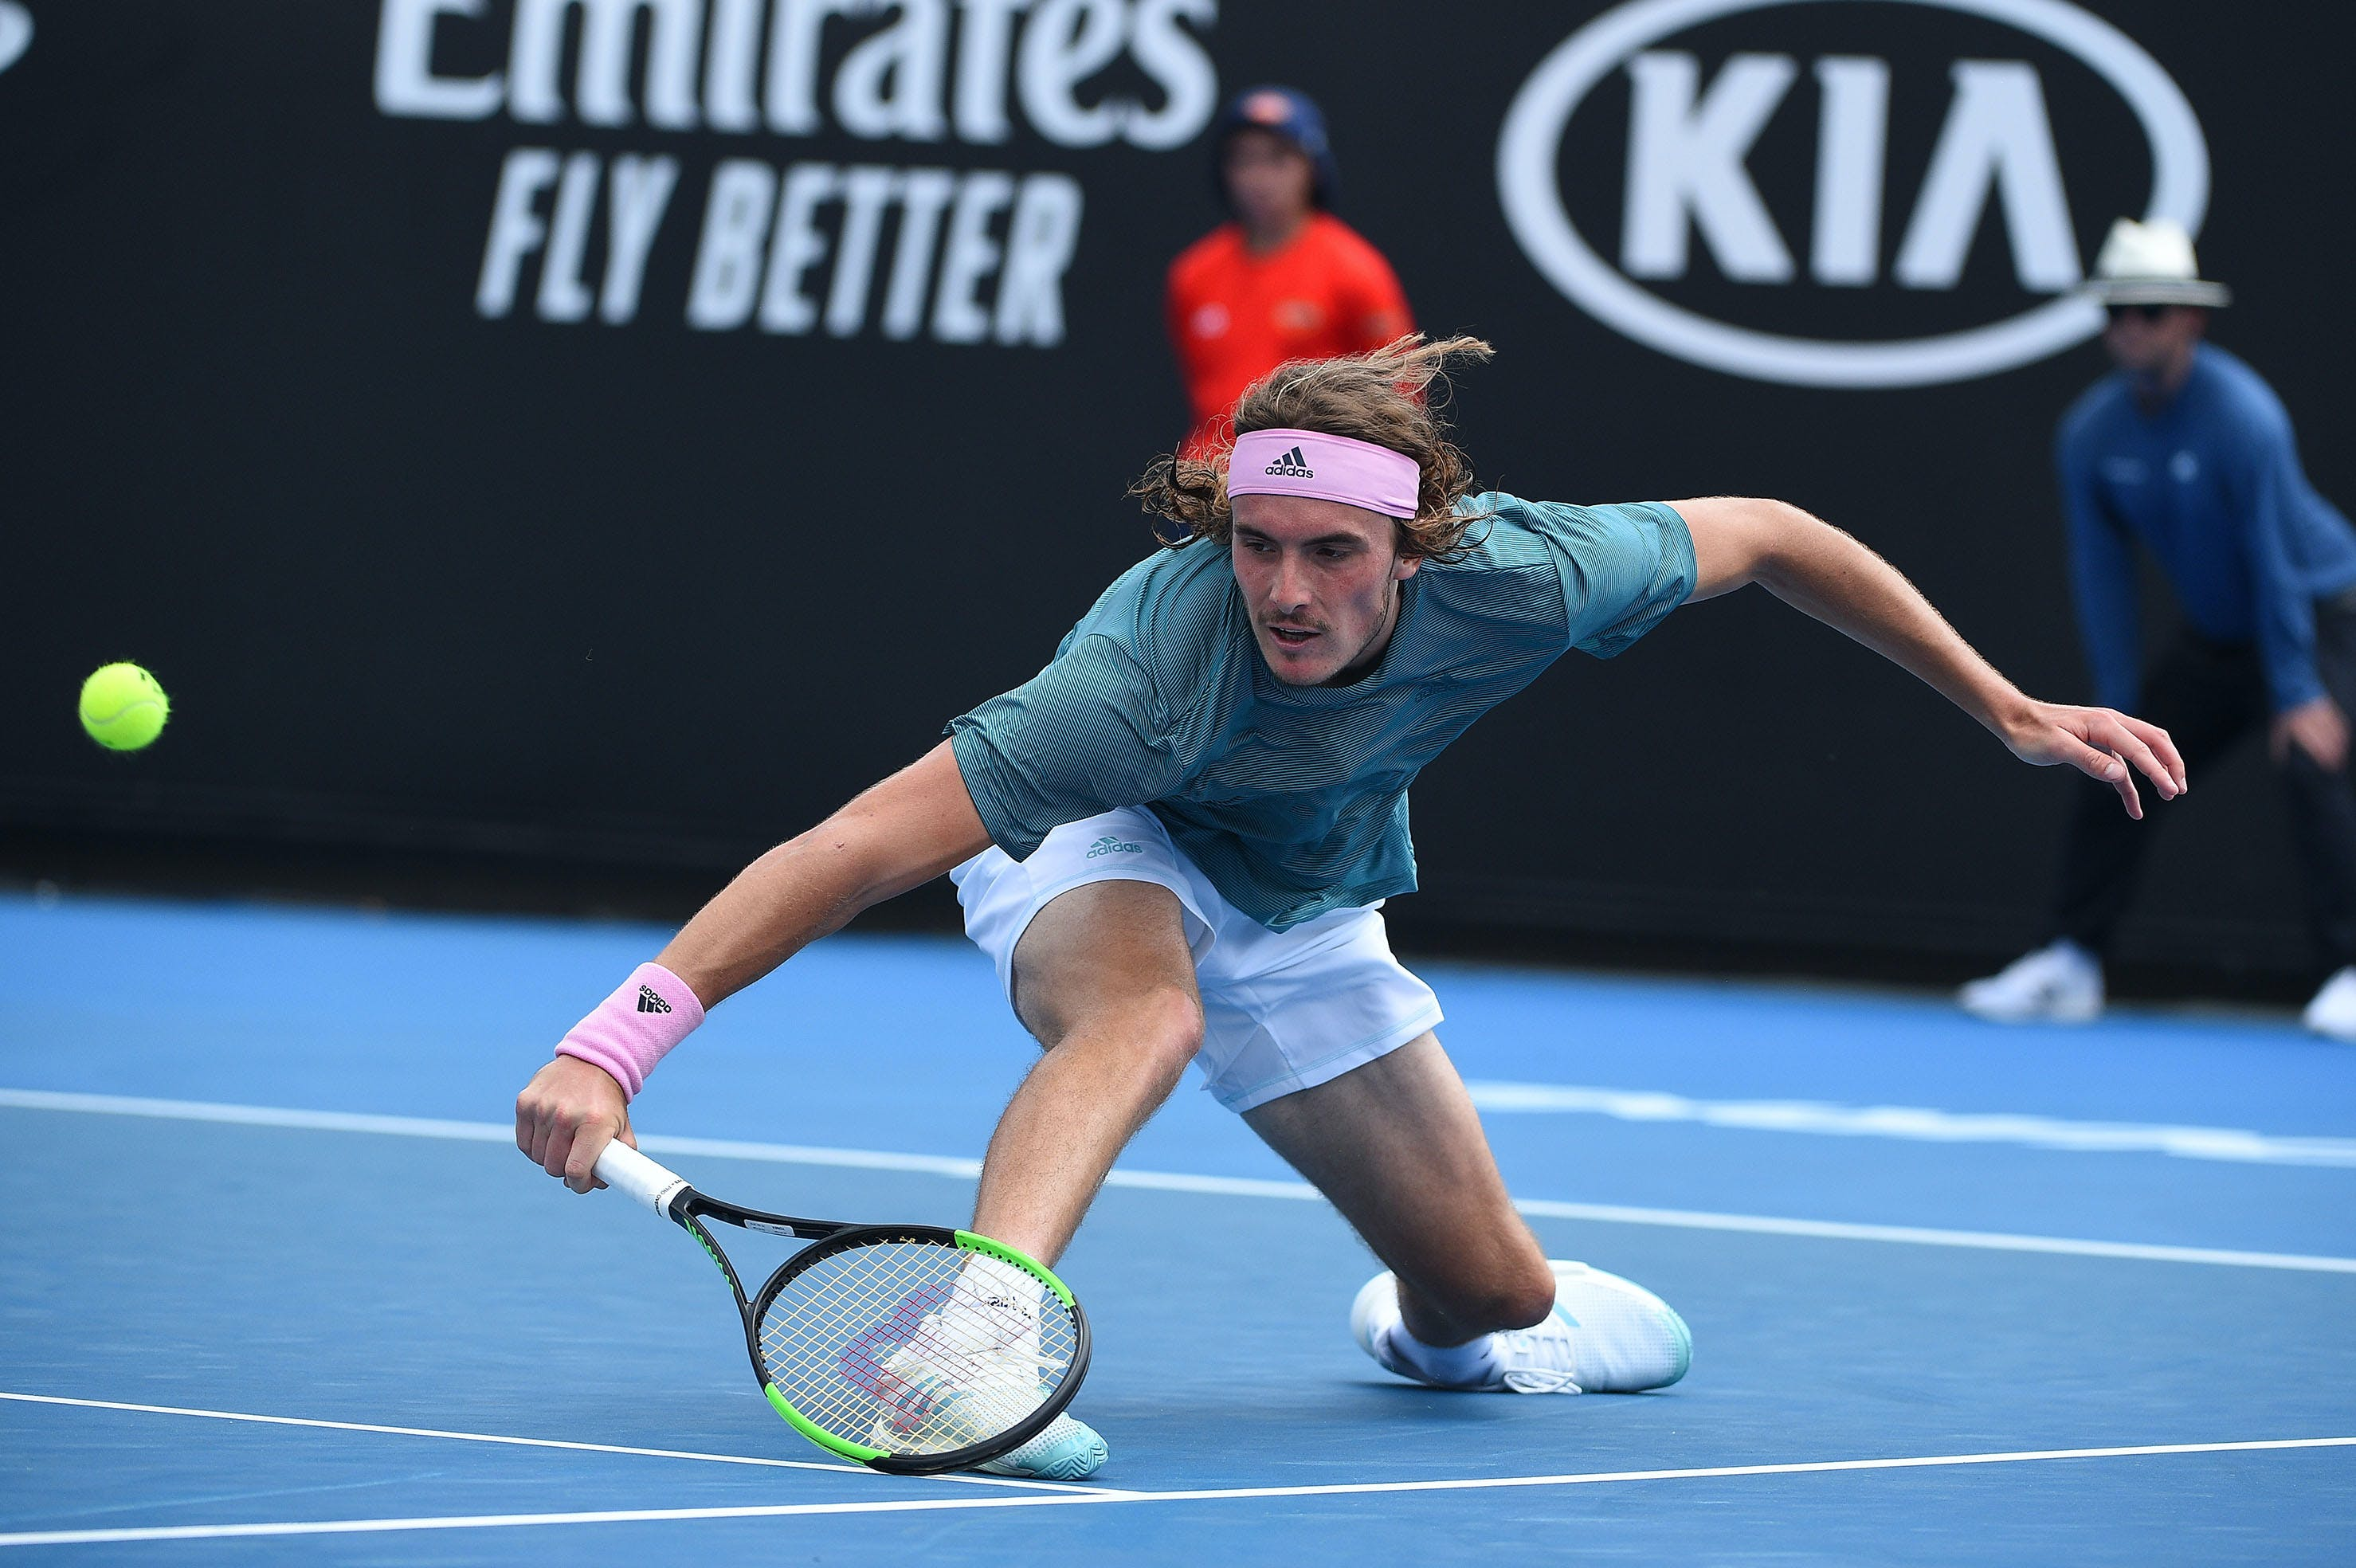 Stefanos Tsitsipas sliding for a drop shot backhand at the Australian Open 2019